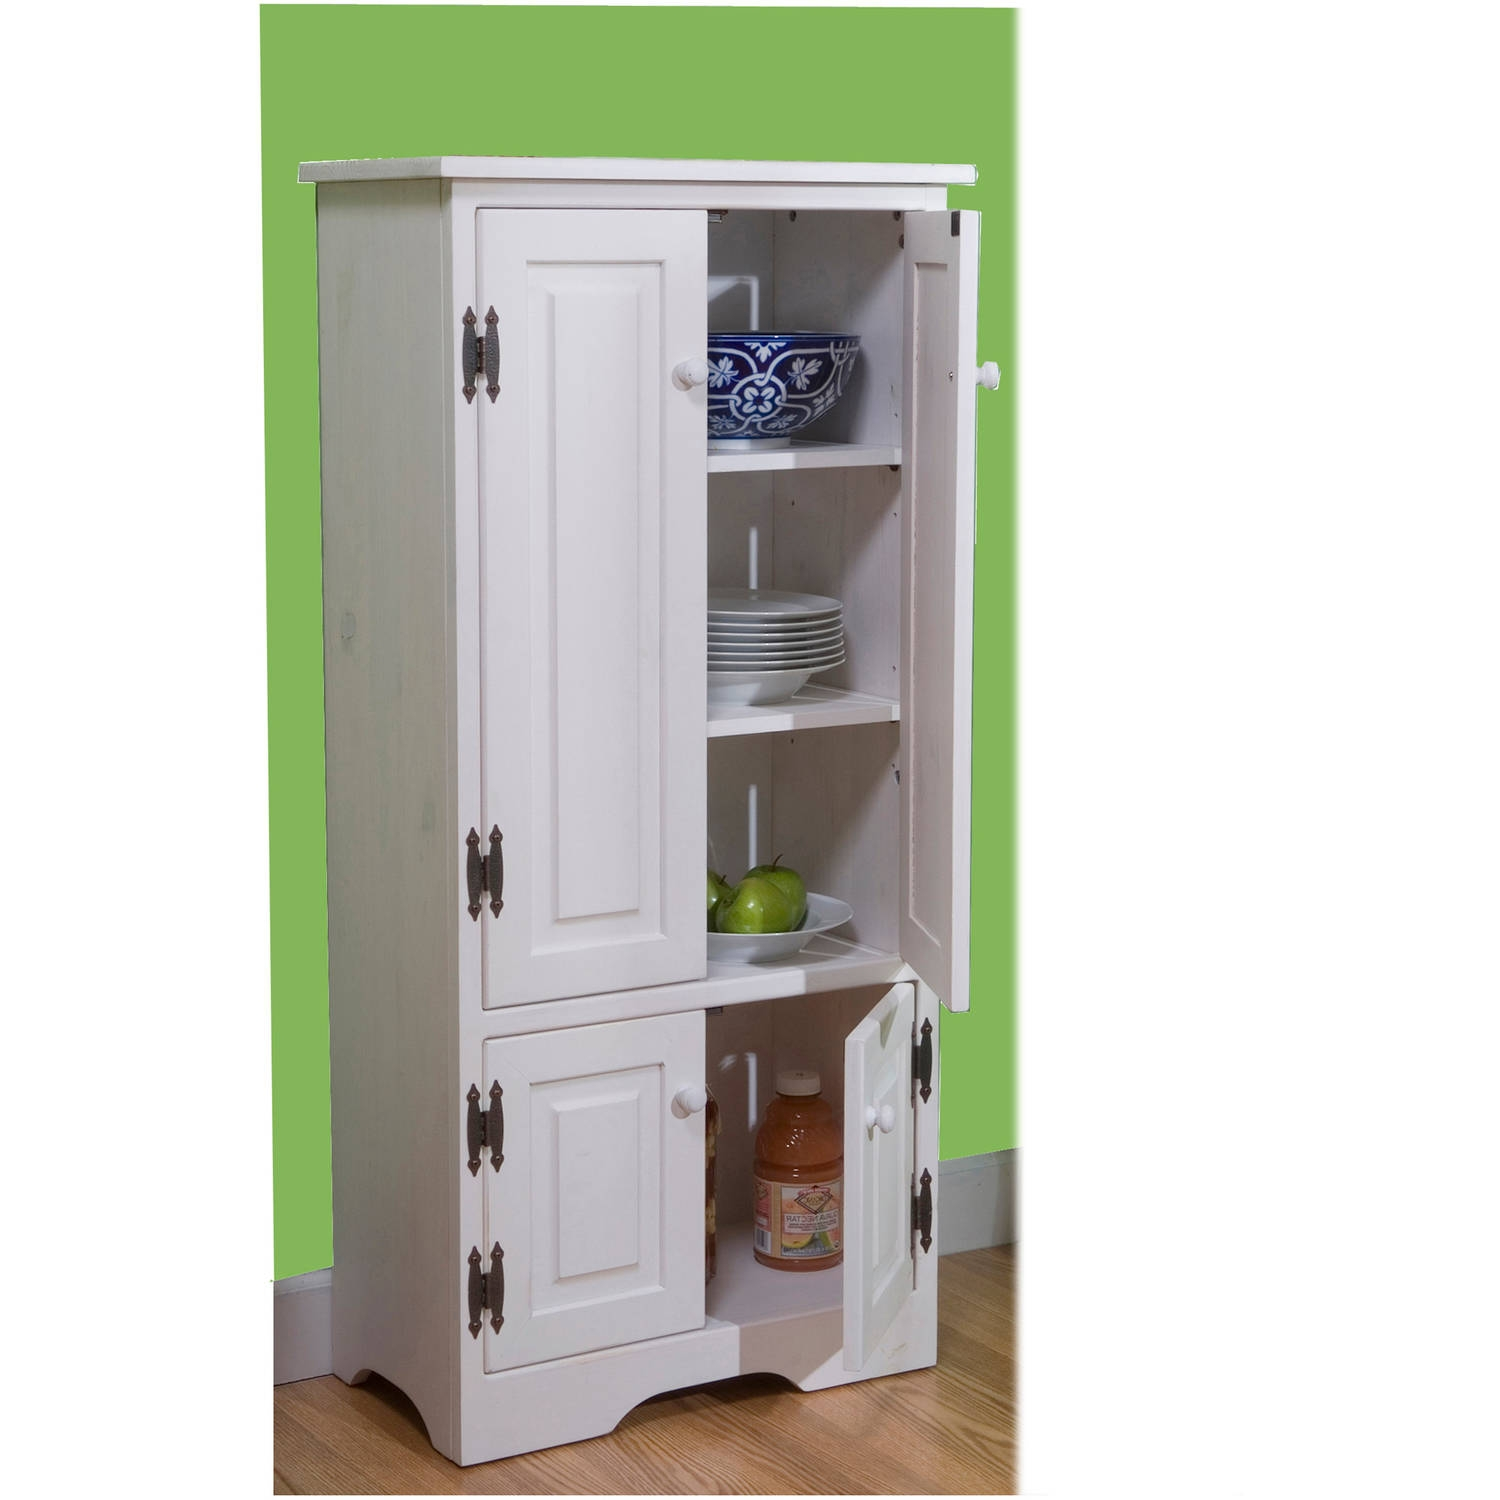 Pantry Storage Cabinet With Doors